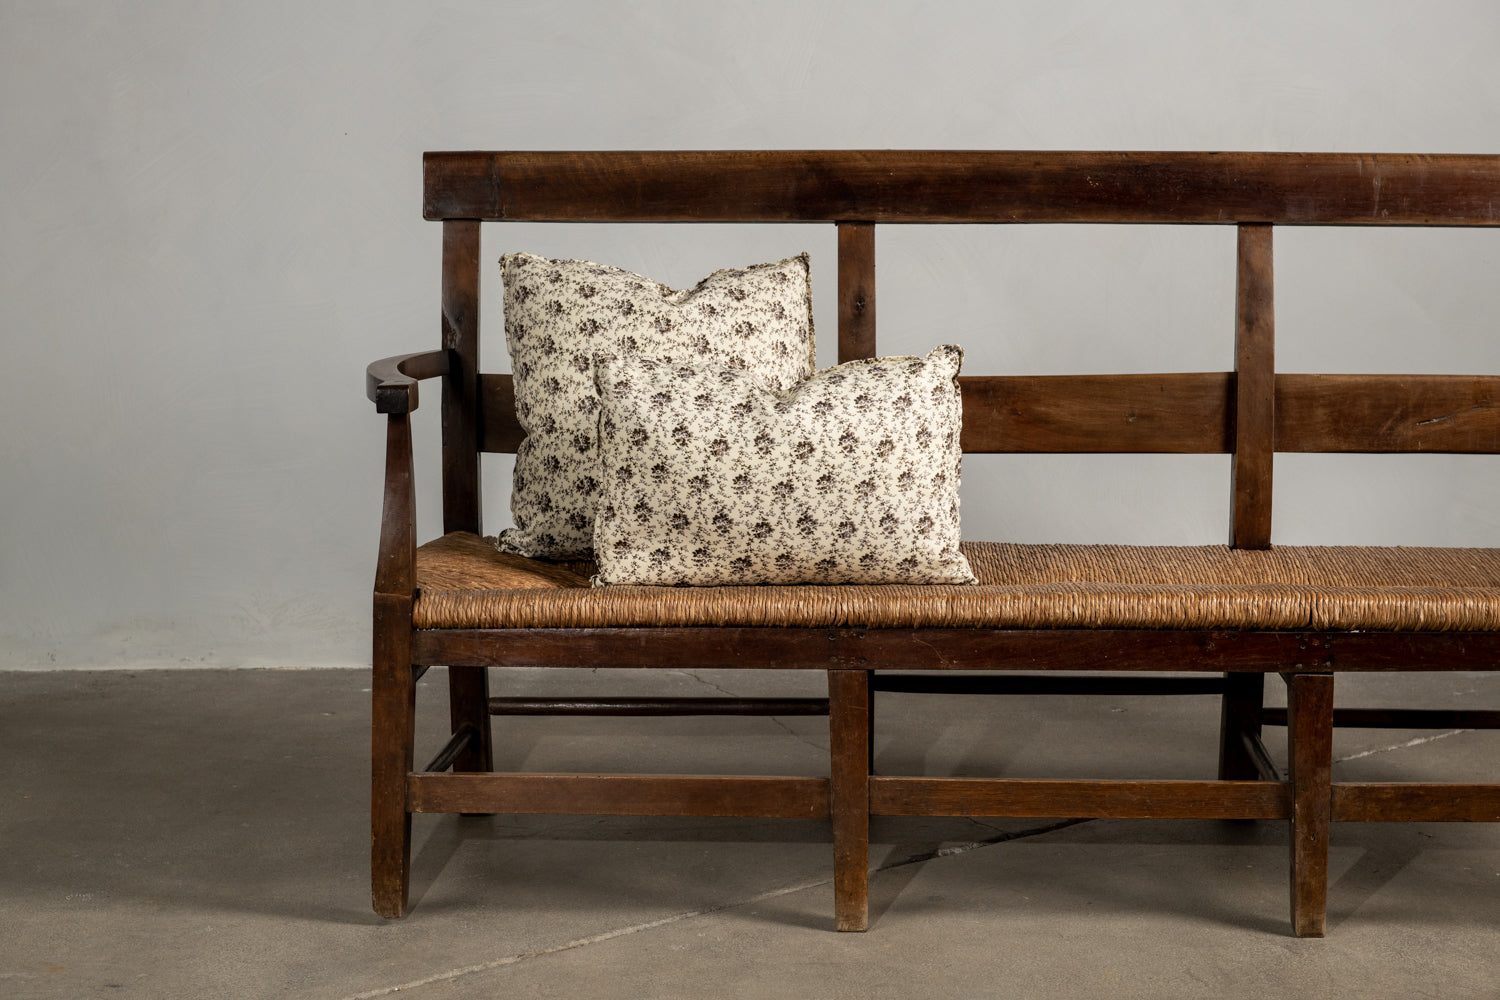 Two Howe Rambling Rose Nickey Kehoe Collection pillows on a bench.